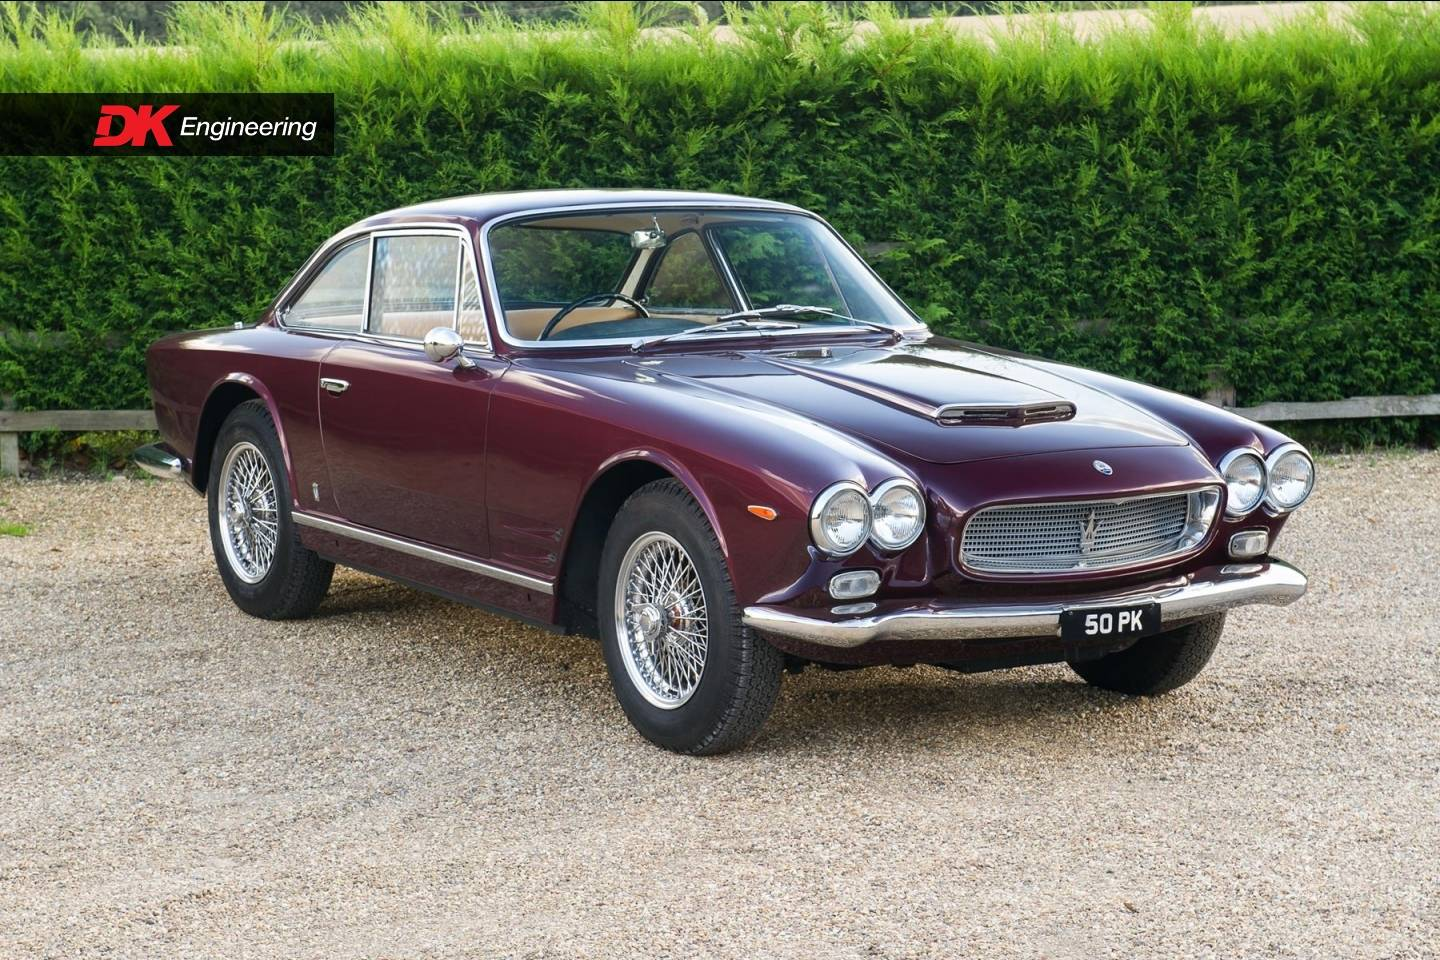 Maserati 3500 GT Touring (1962) for Sale - Classic Trader